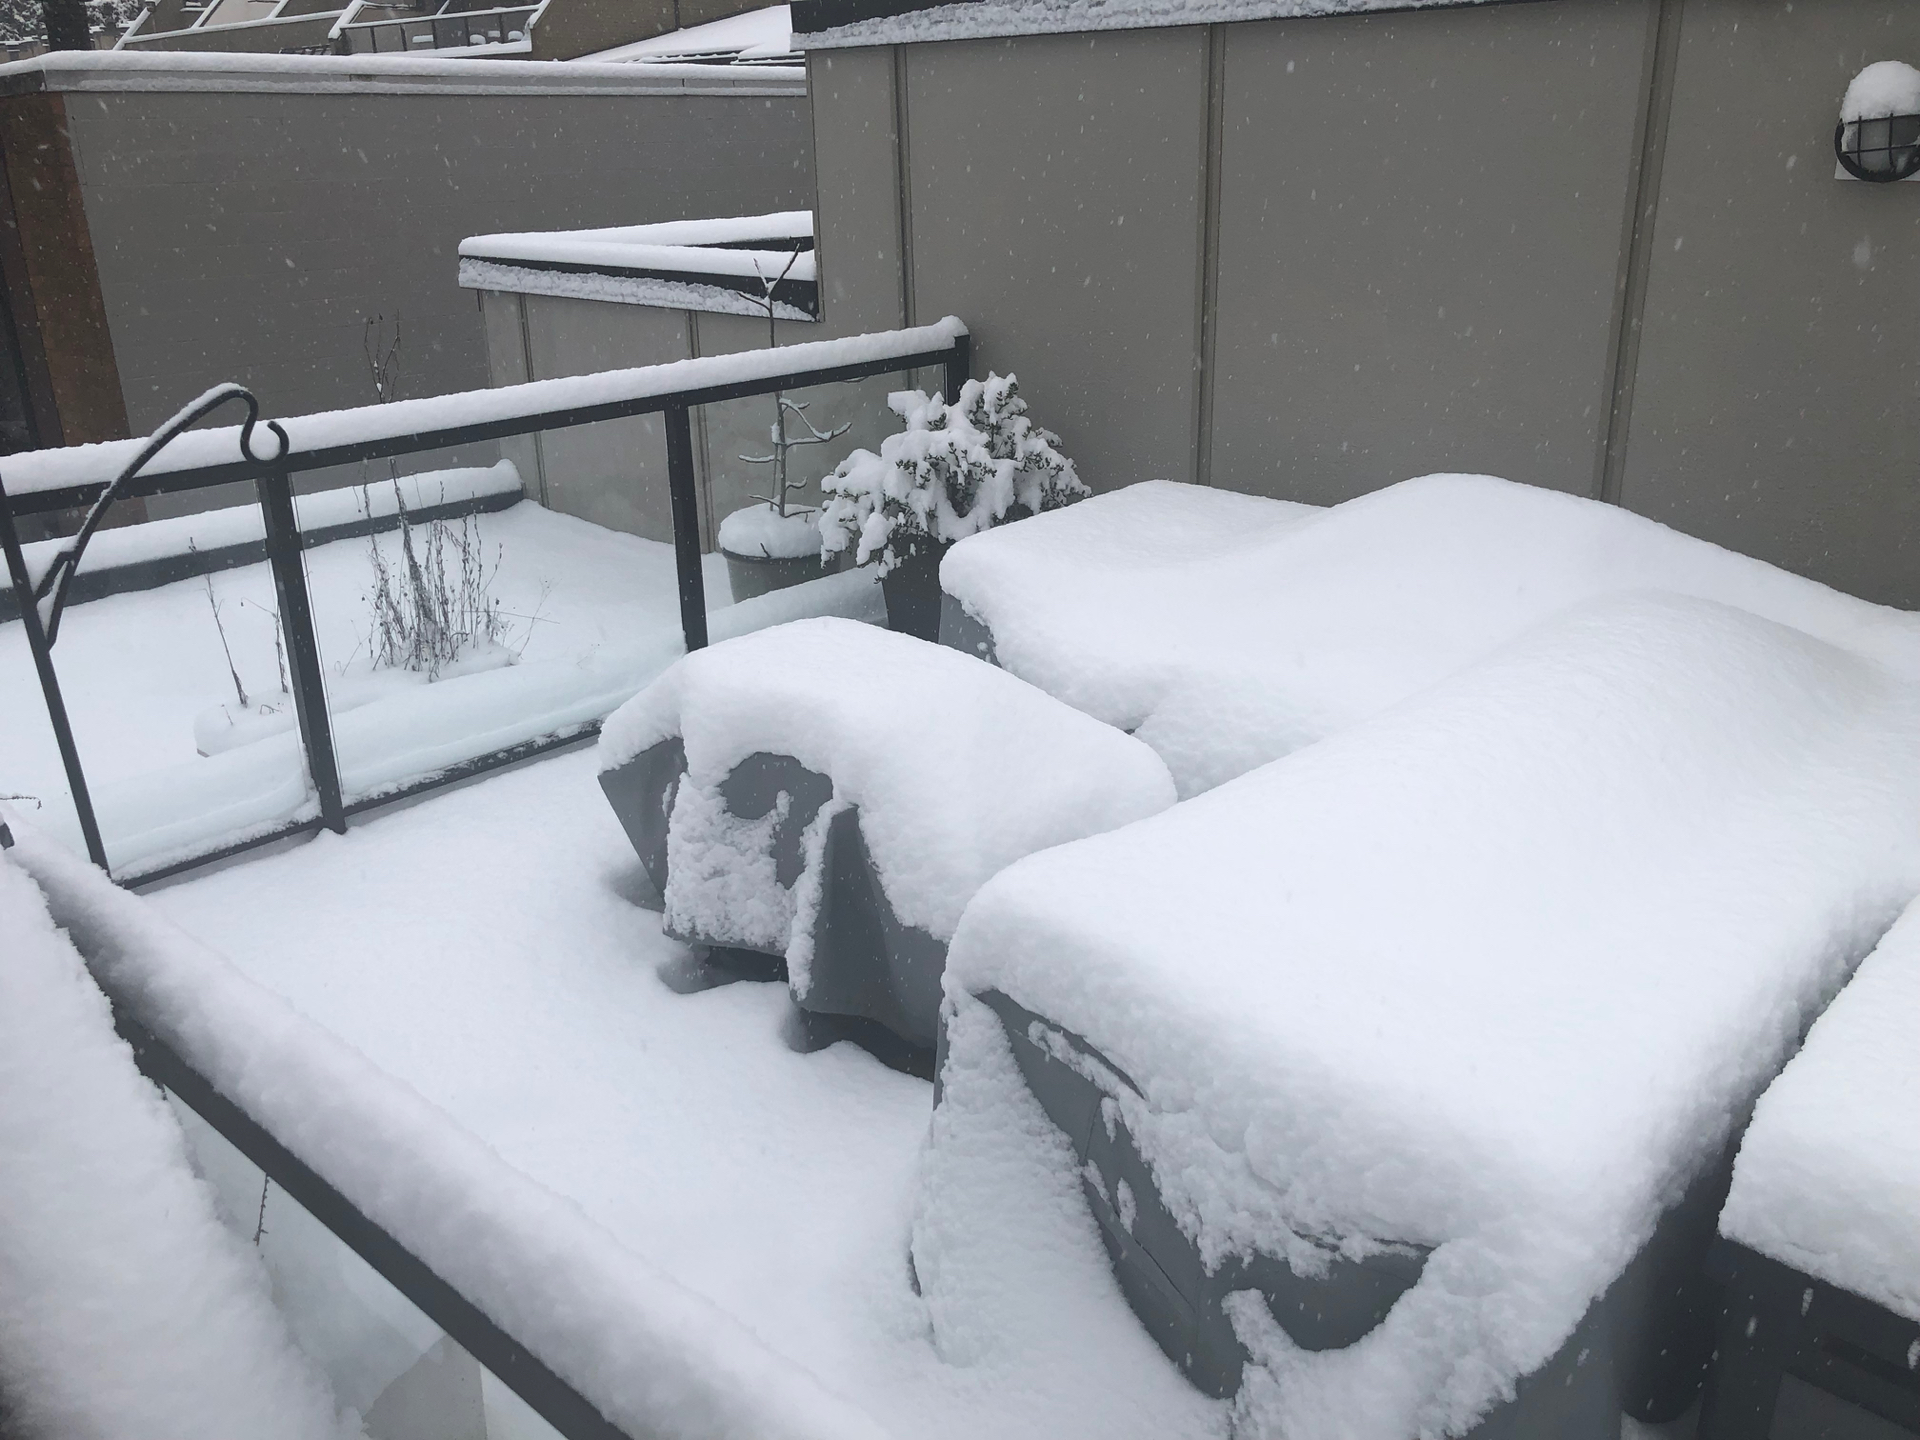 A pretty good sense for the snow we got. Accumulation on the roof deck.